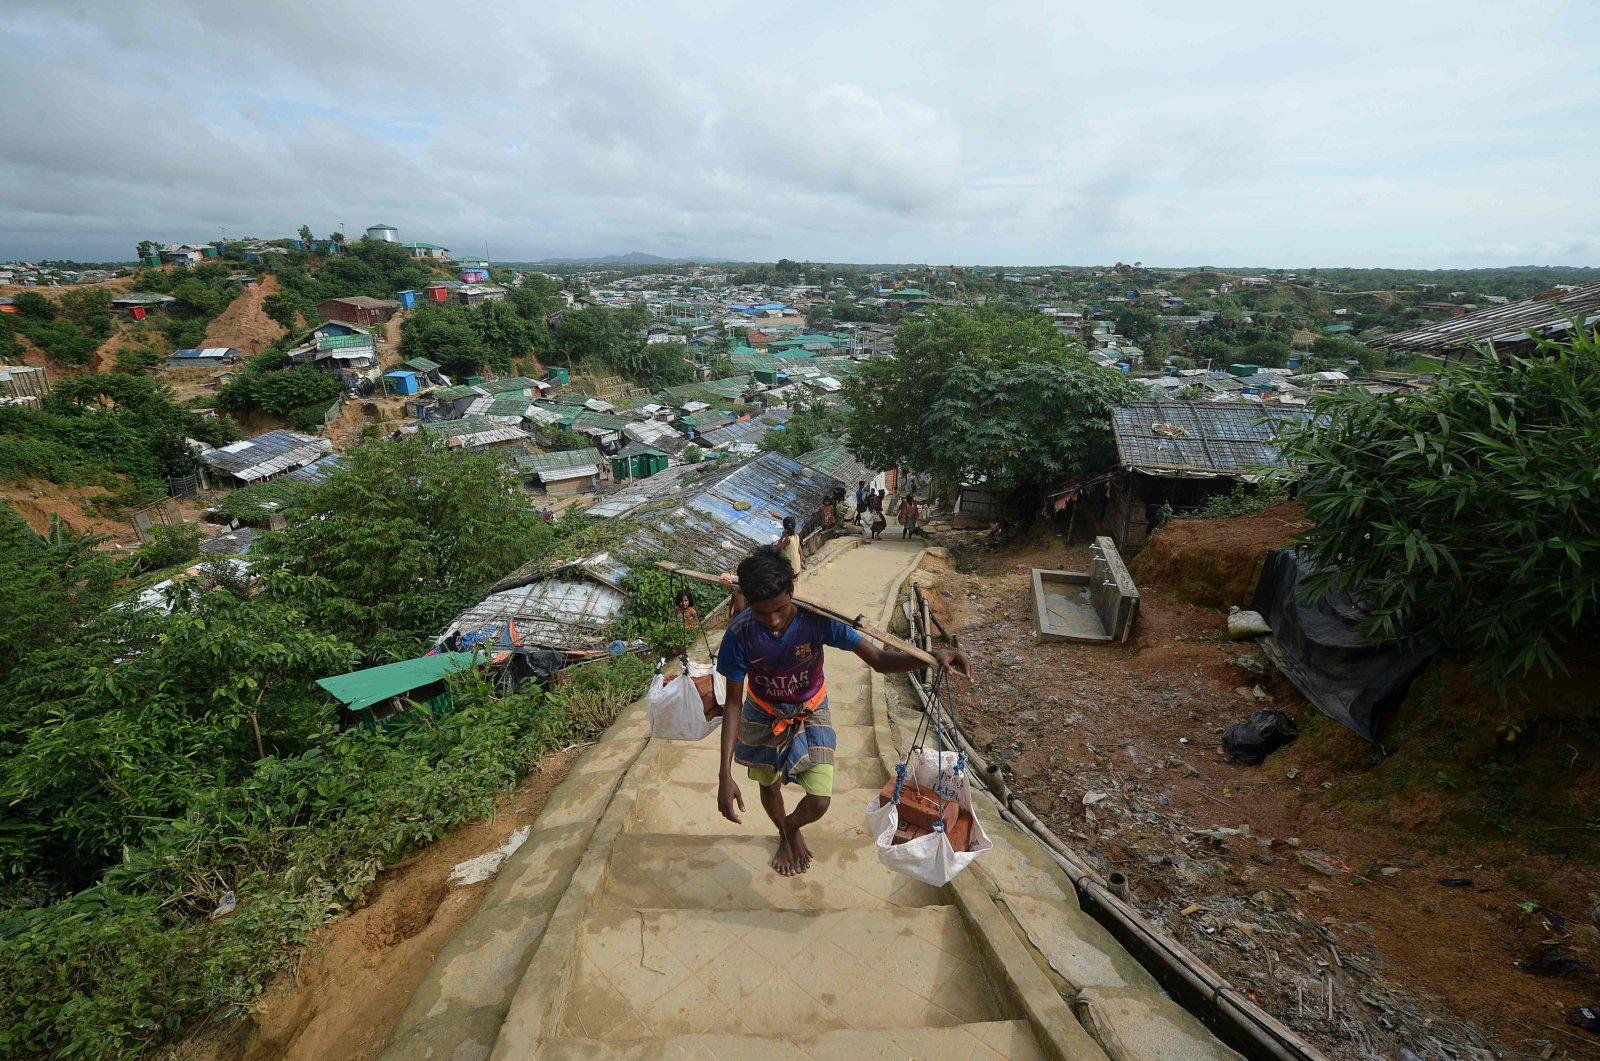 A Rohingya man carries bricks up a hill for construction works in a Jamtoli refugee camp near Ukhia, Bangladesh, Aug. 23, 2020. (AFP Photo)